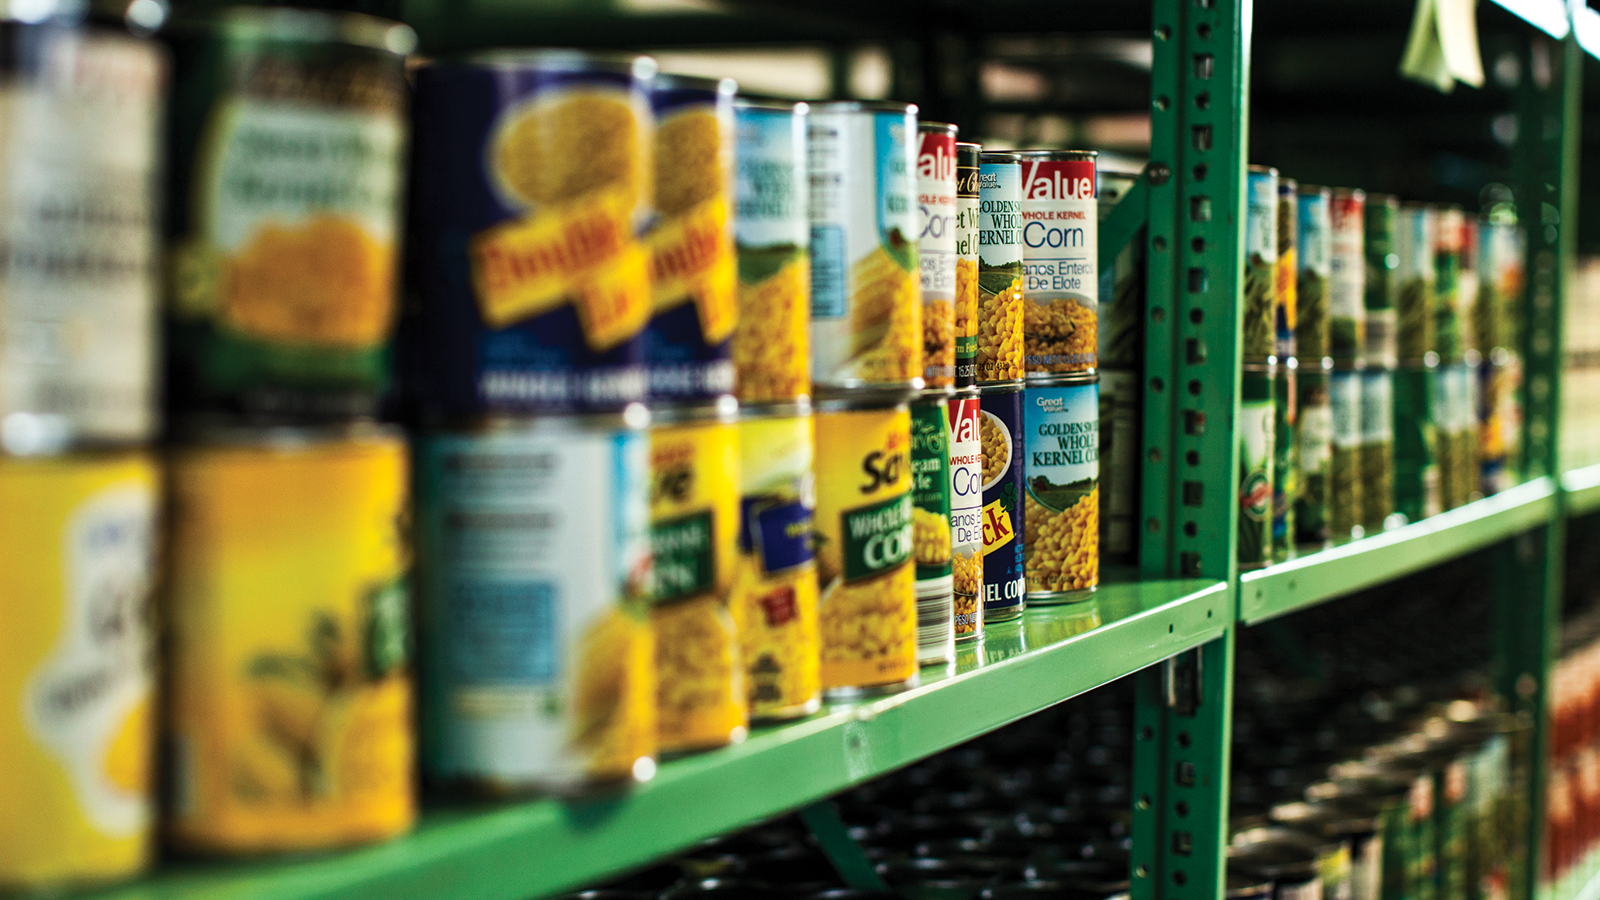 food pantry shelves stacked with canned food